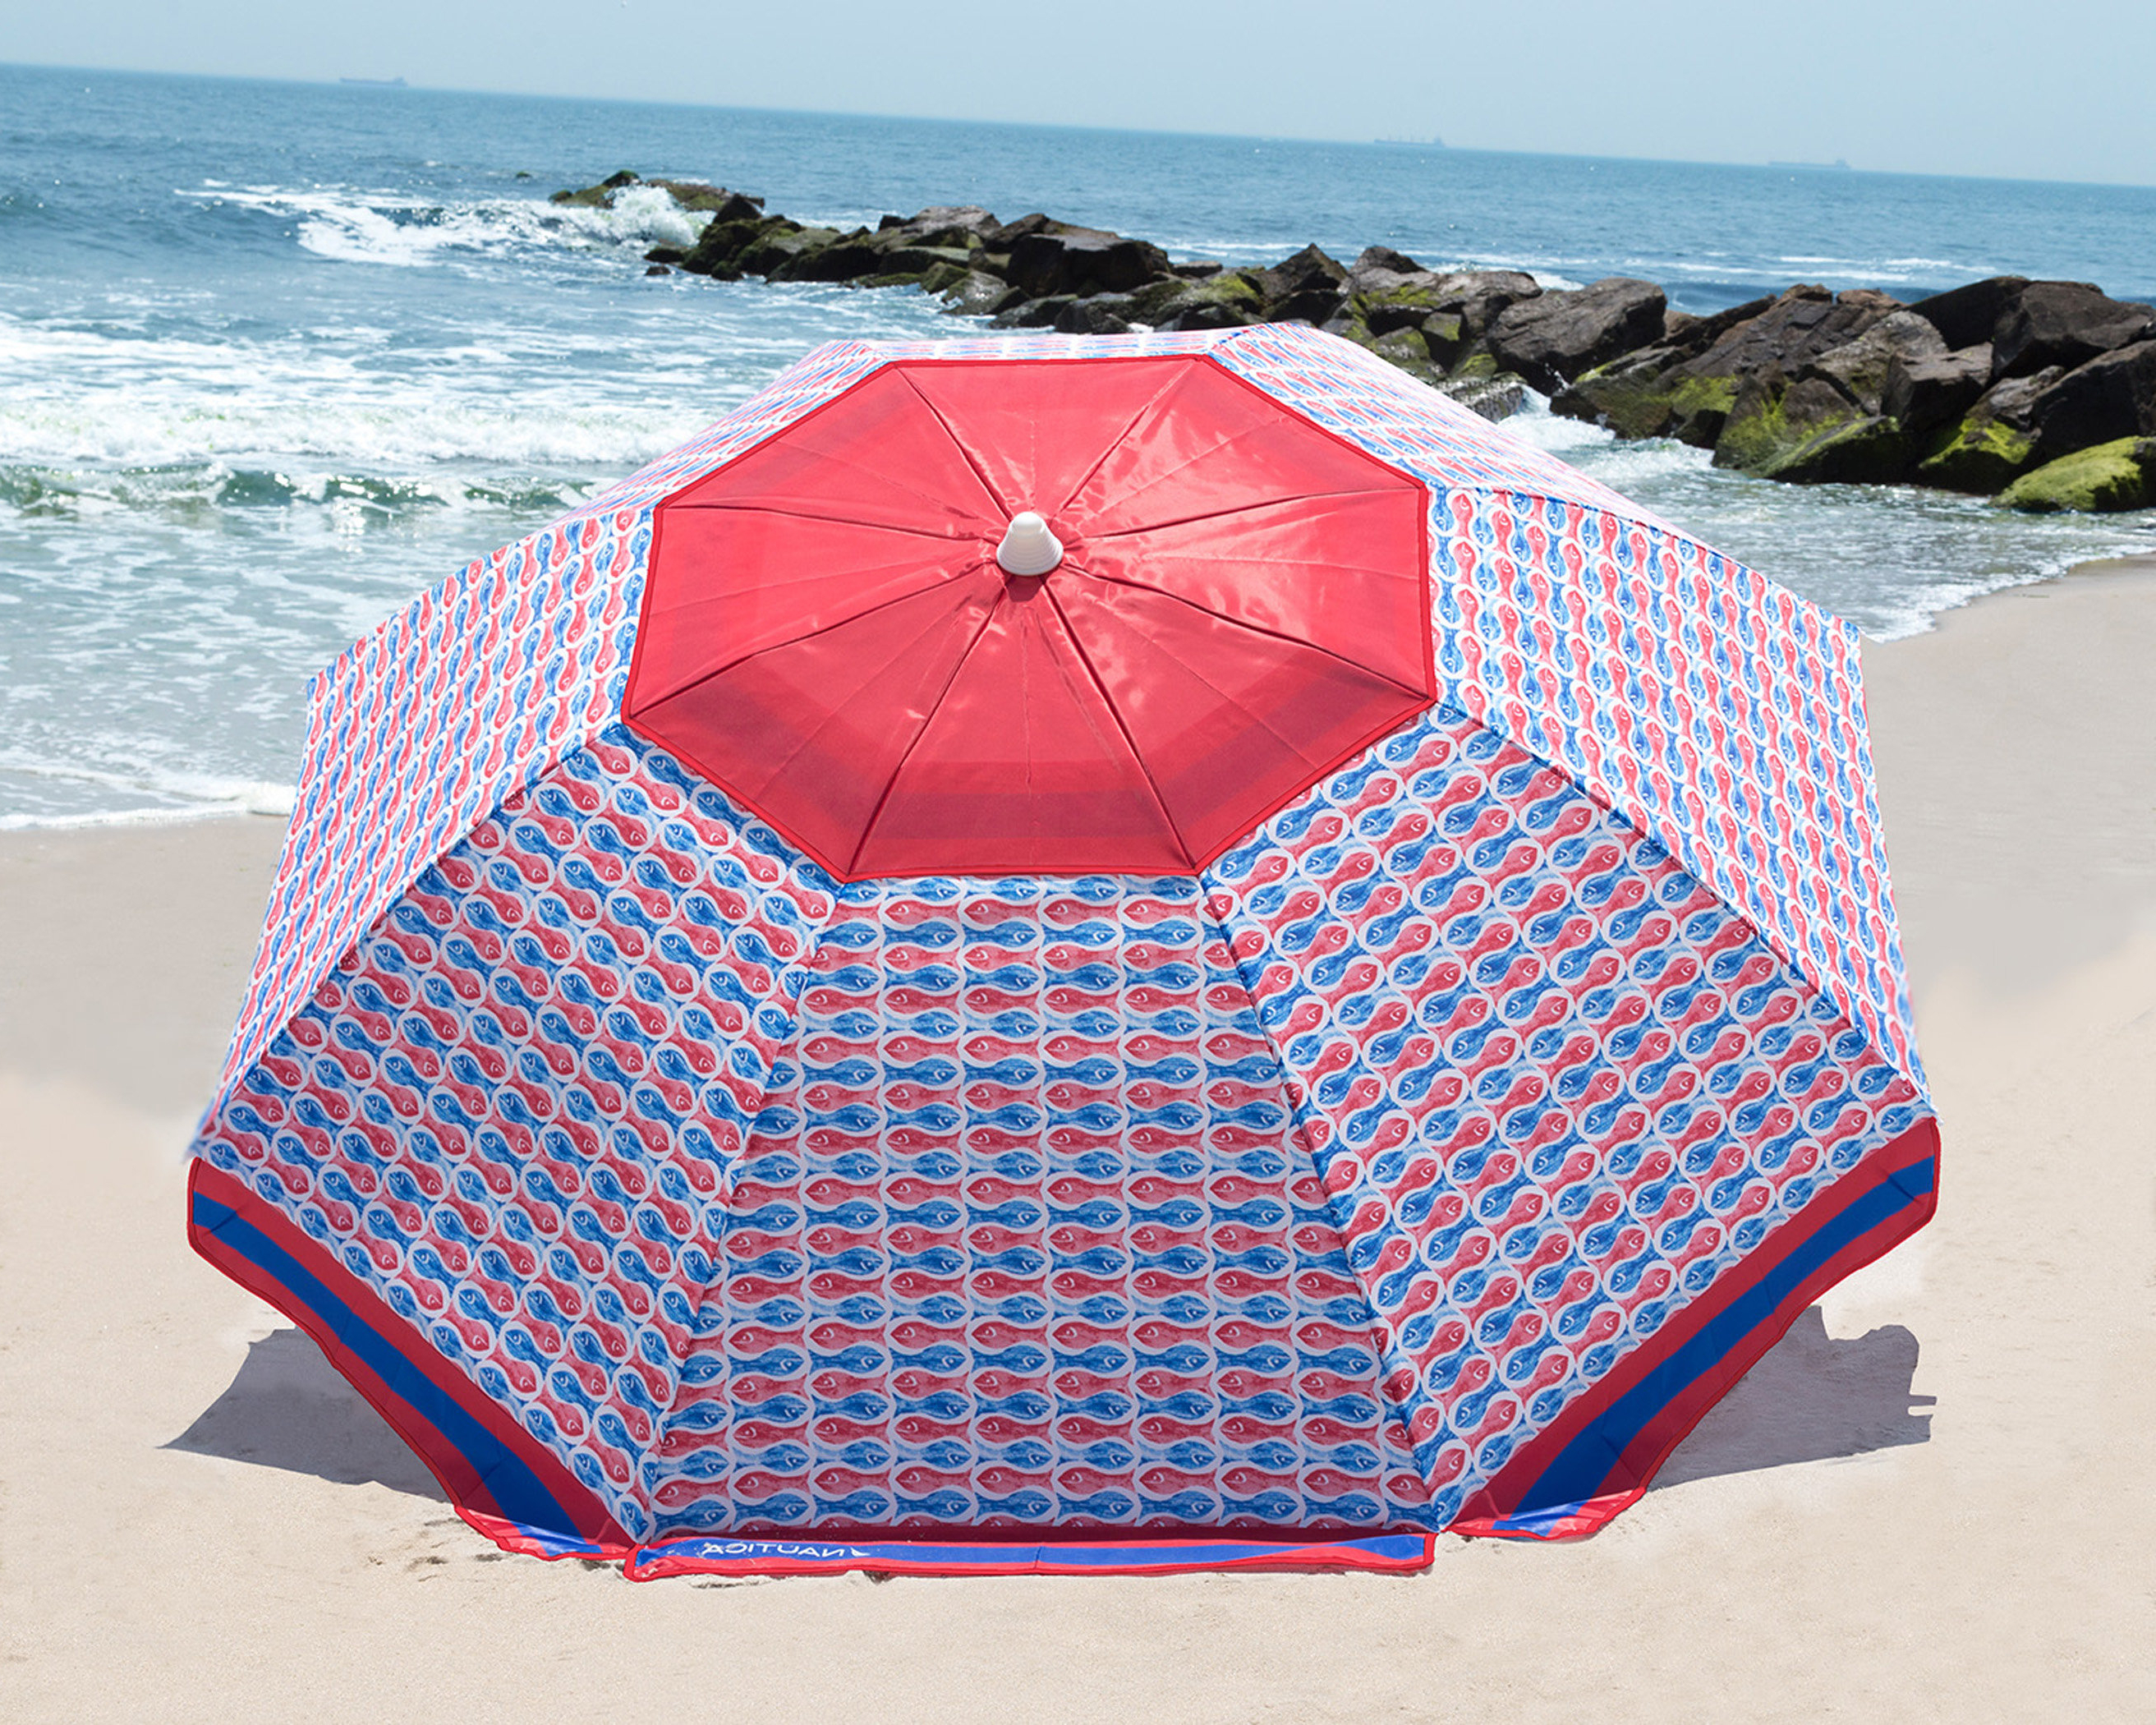 Nautica 7' Beach Umbrella Pertaining To Most Current Smithmill Beach Umbrellas (View 10 of 20)